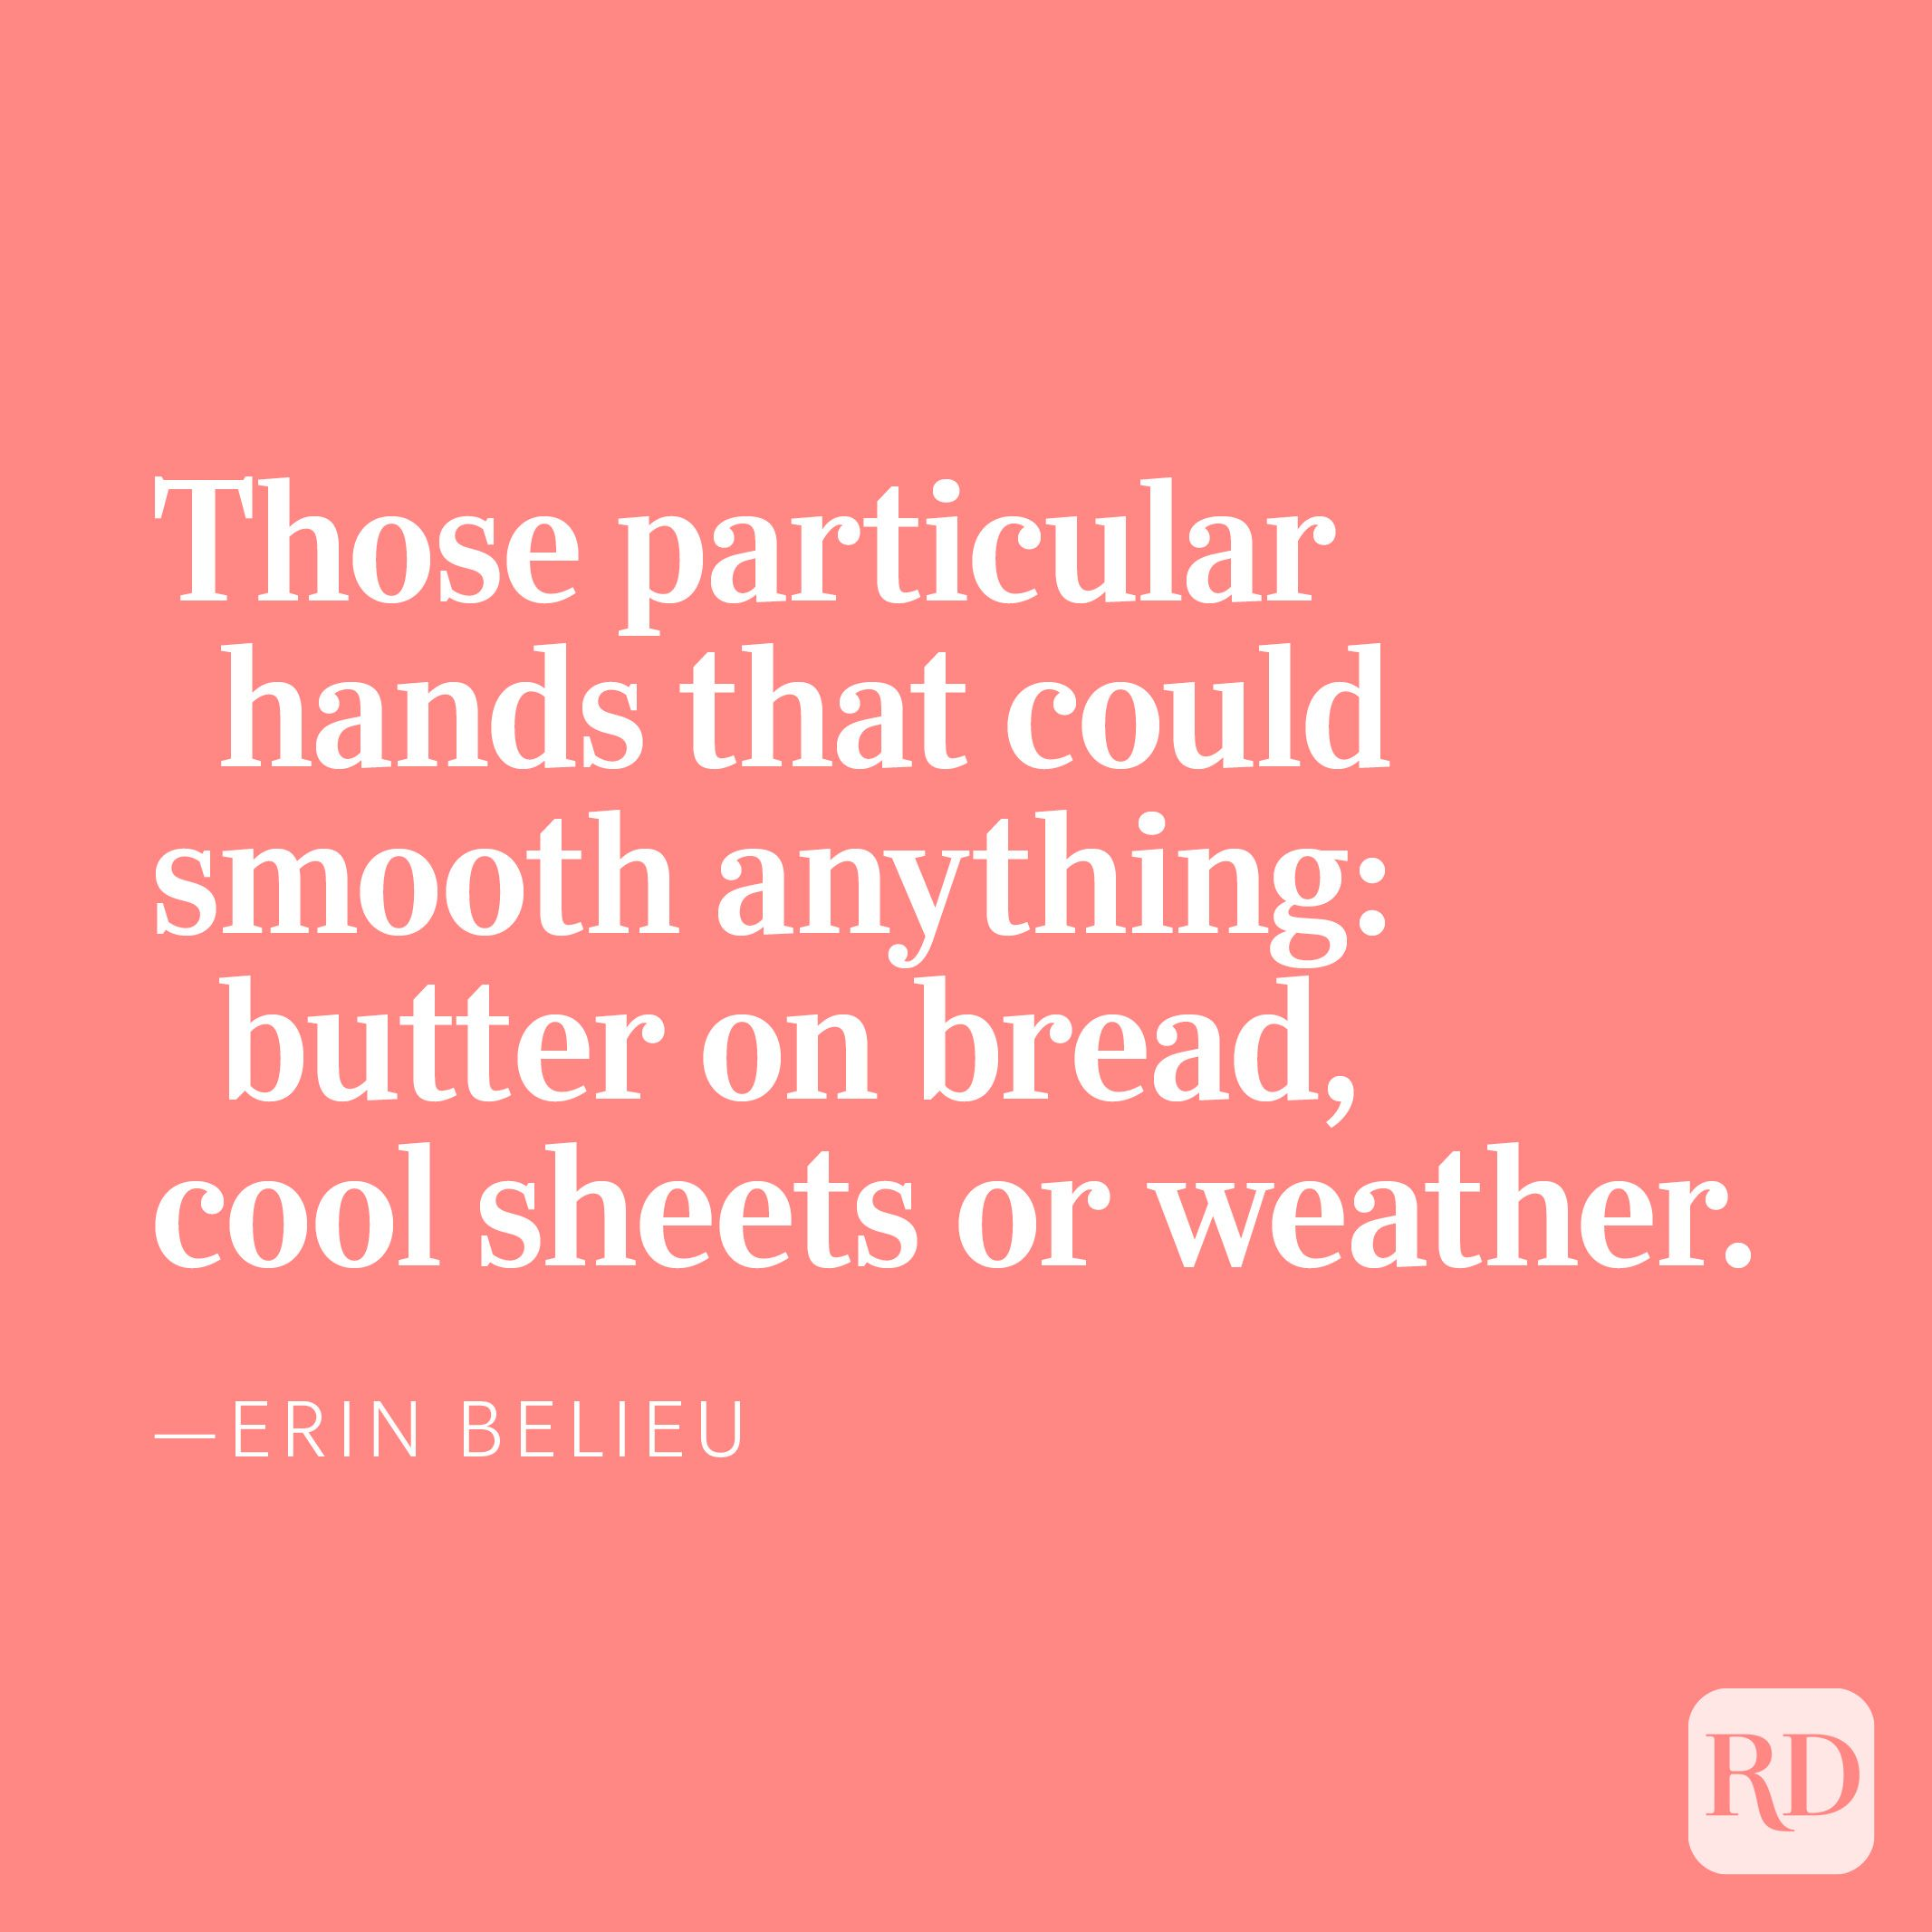 Those particular hands that could smooth anything: butter on bread,cool sheets or weather. —Erin Belieu